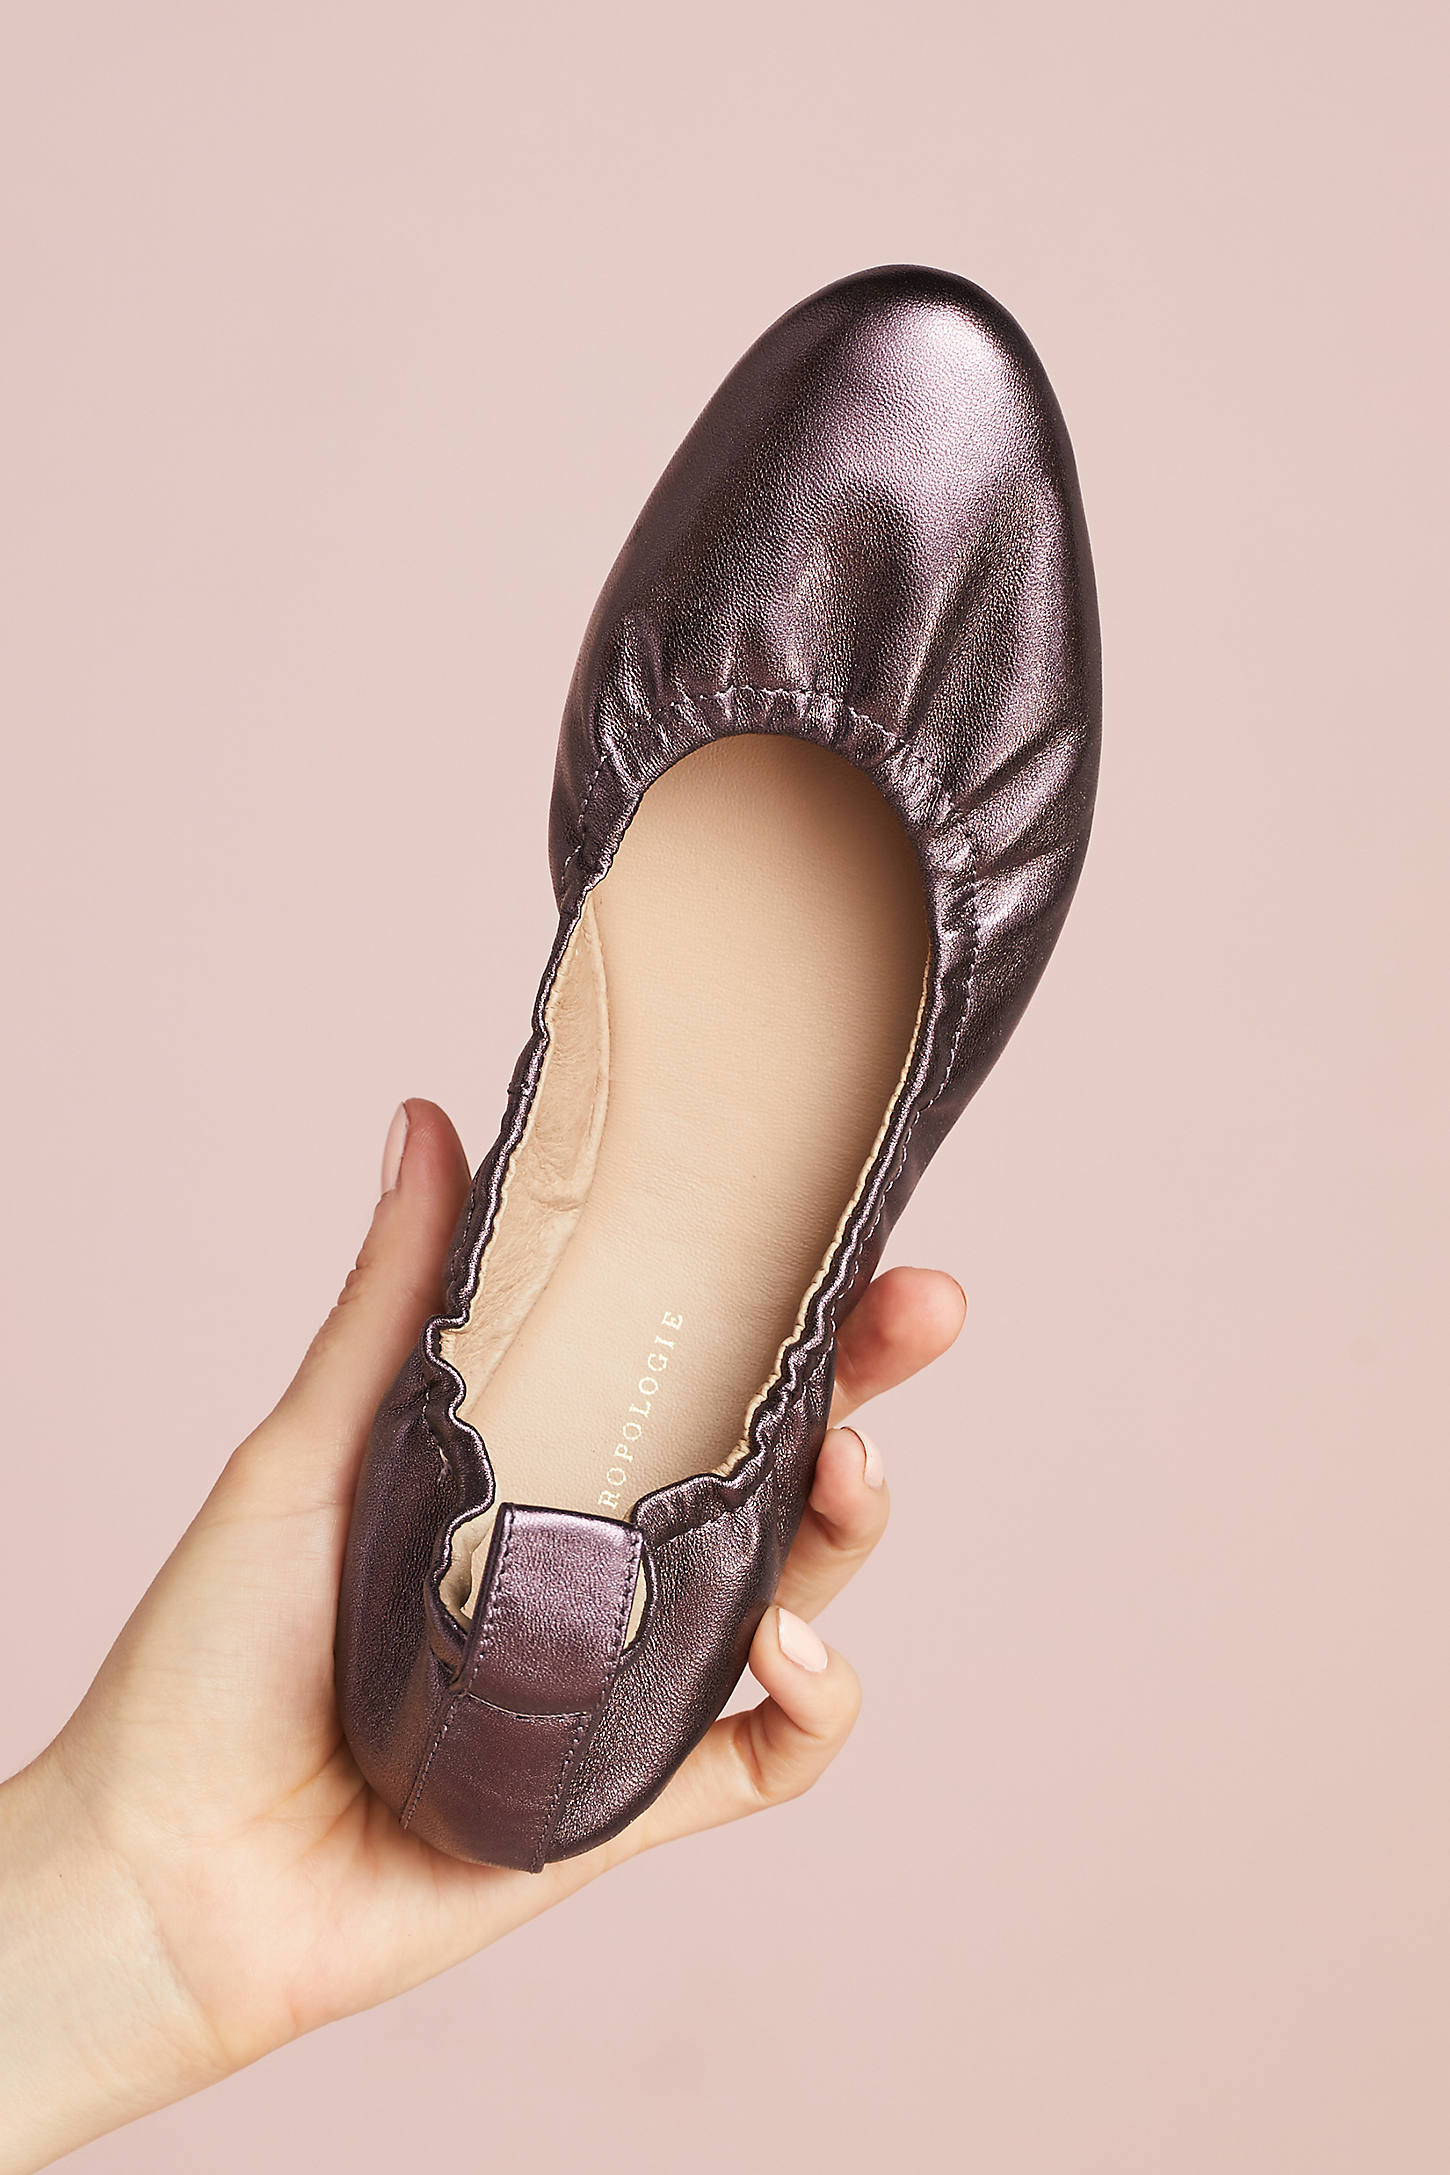 Anthropologie Mulberry Ballet Flats